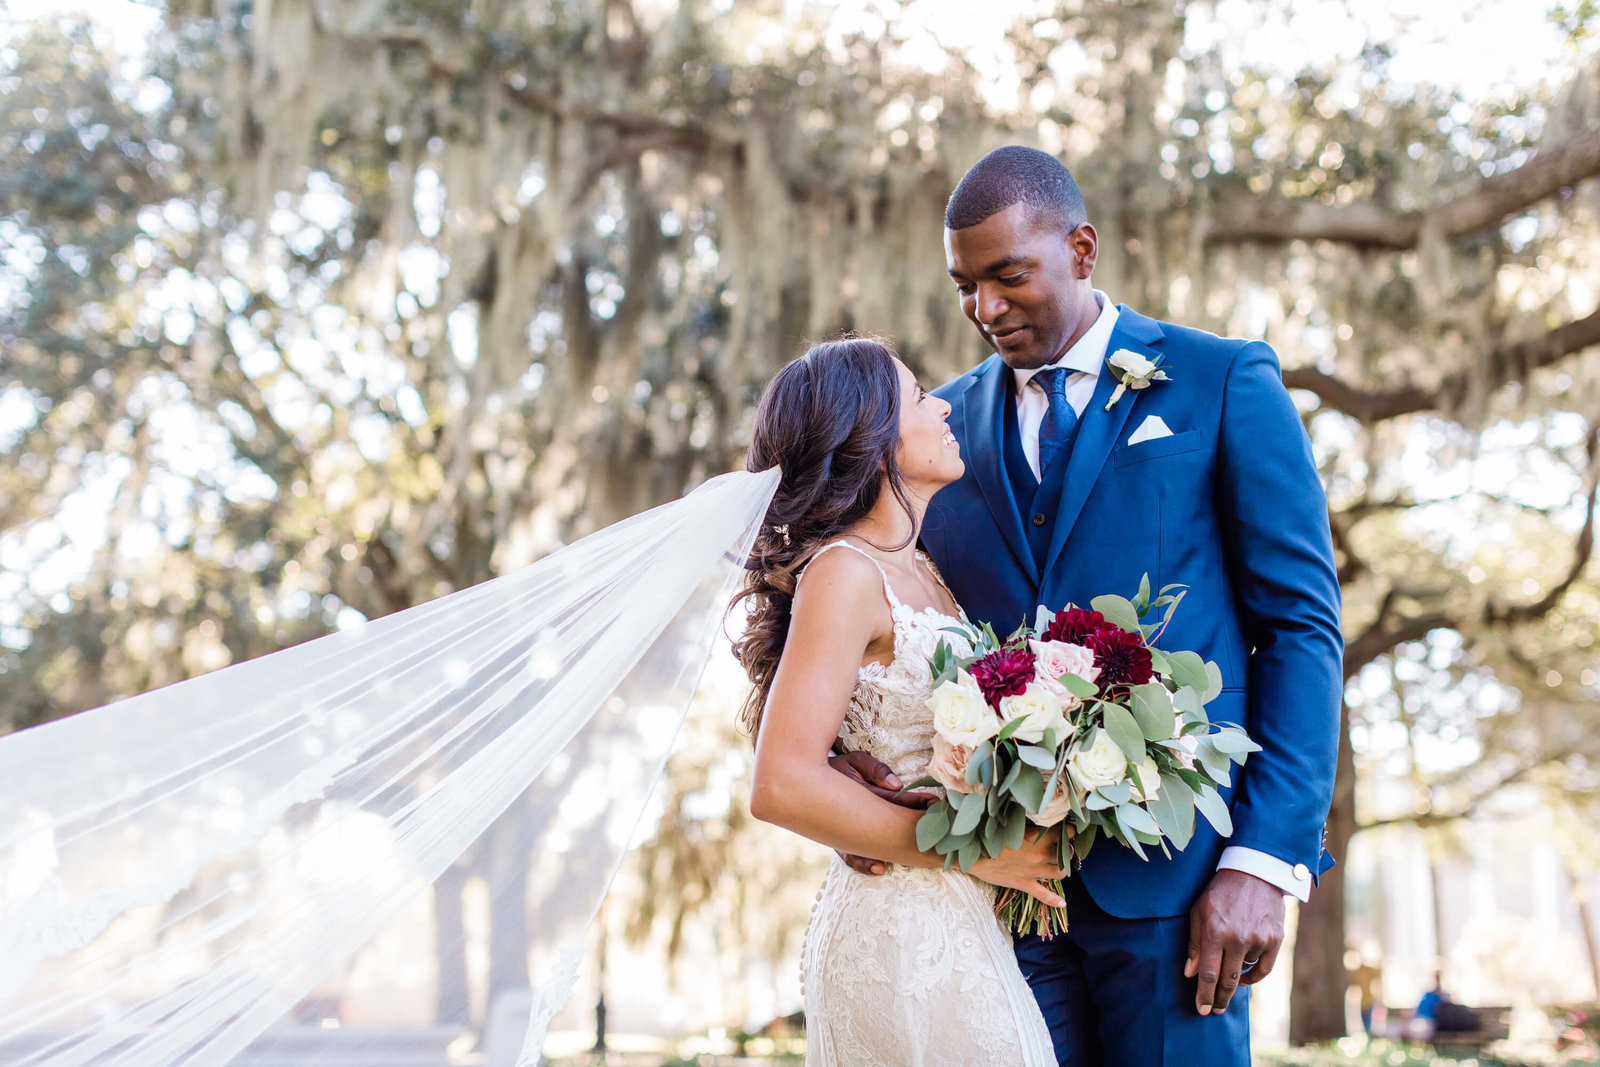 Bride and groom portraits in Downtown Savannah by Apt. B Photography